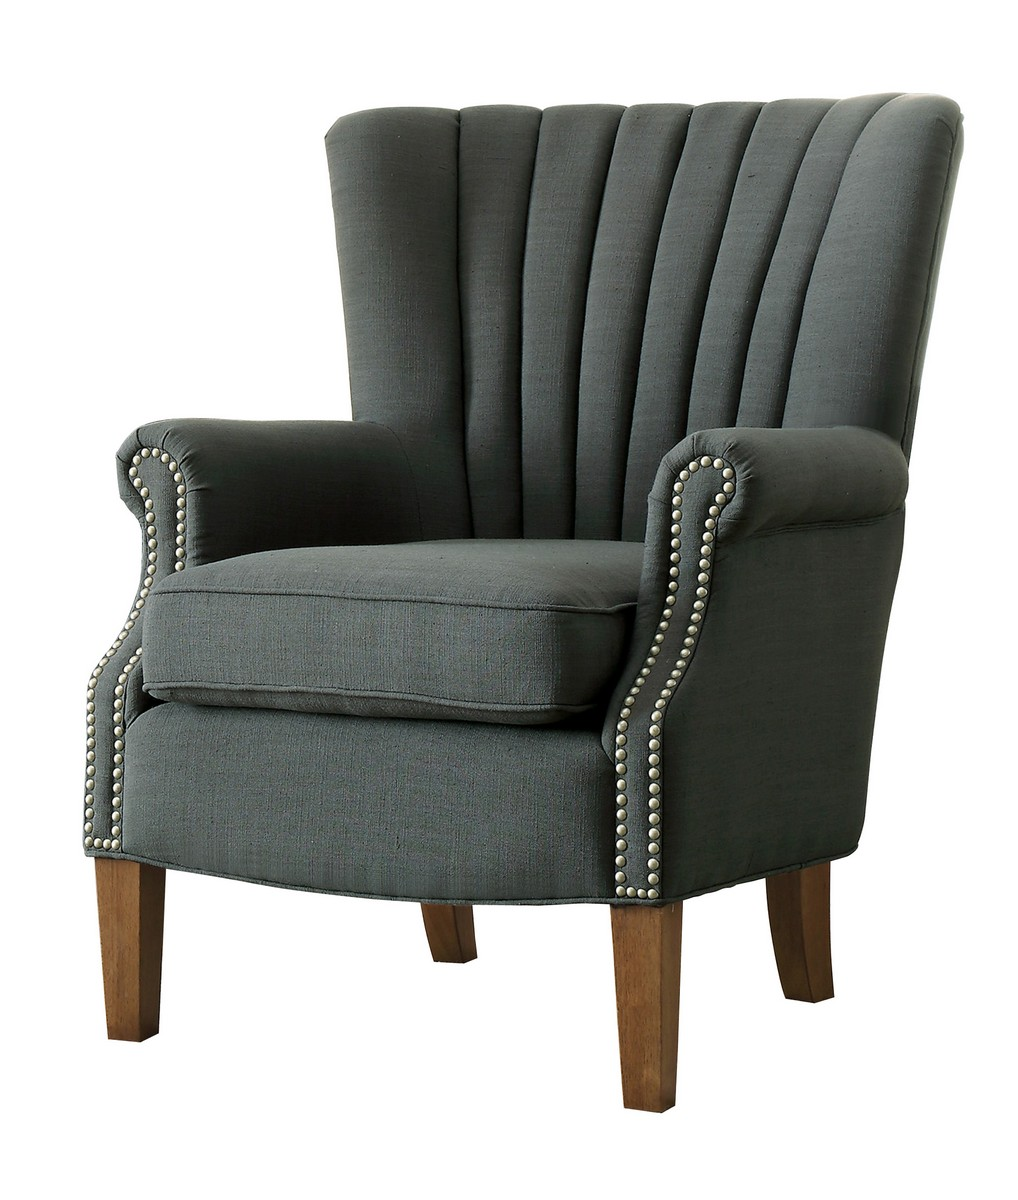 Homelegance Essex Accent Chair - Dark Grey